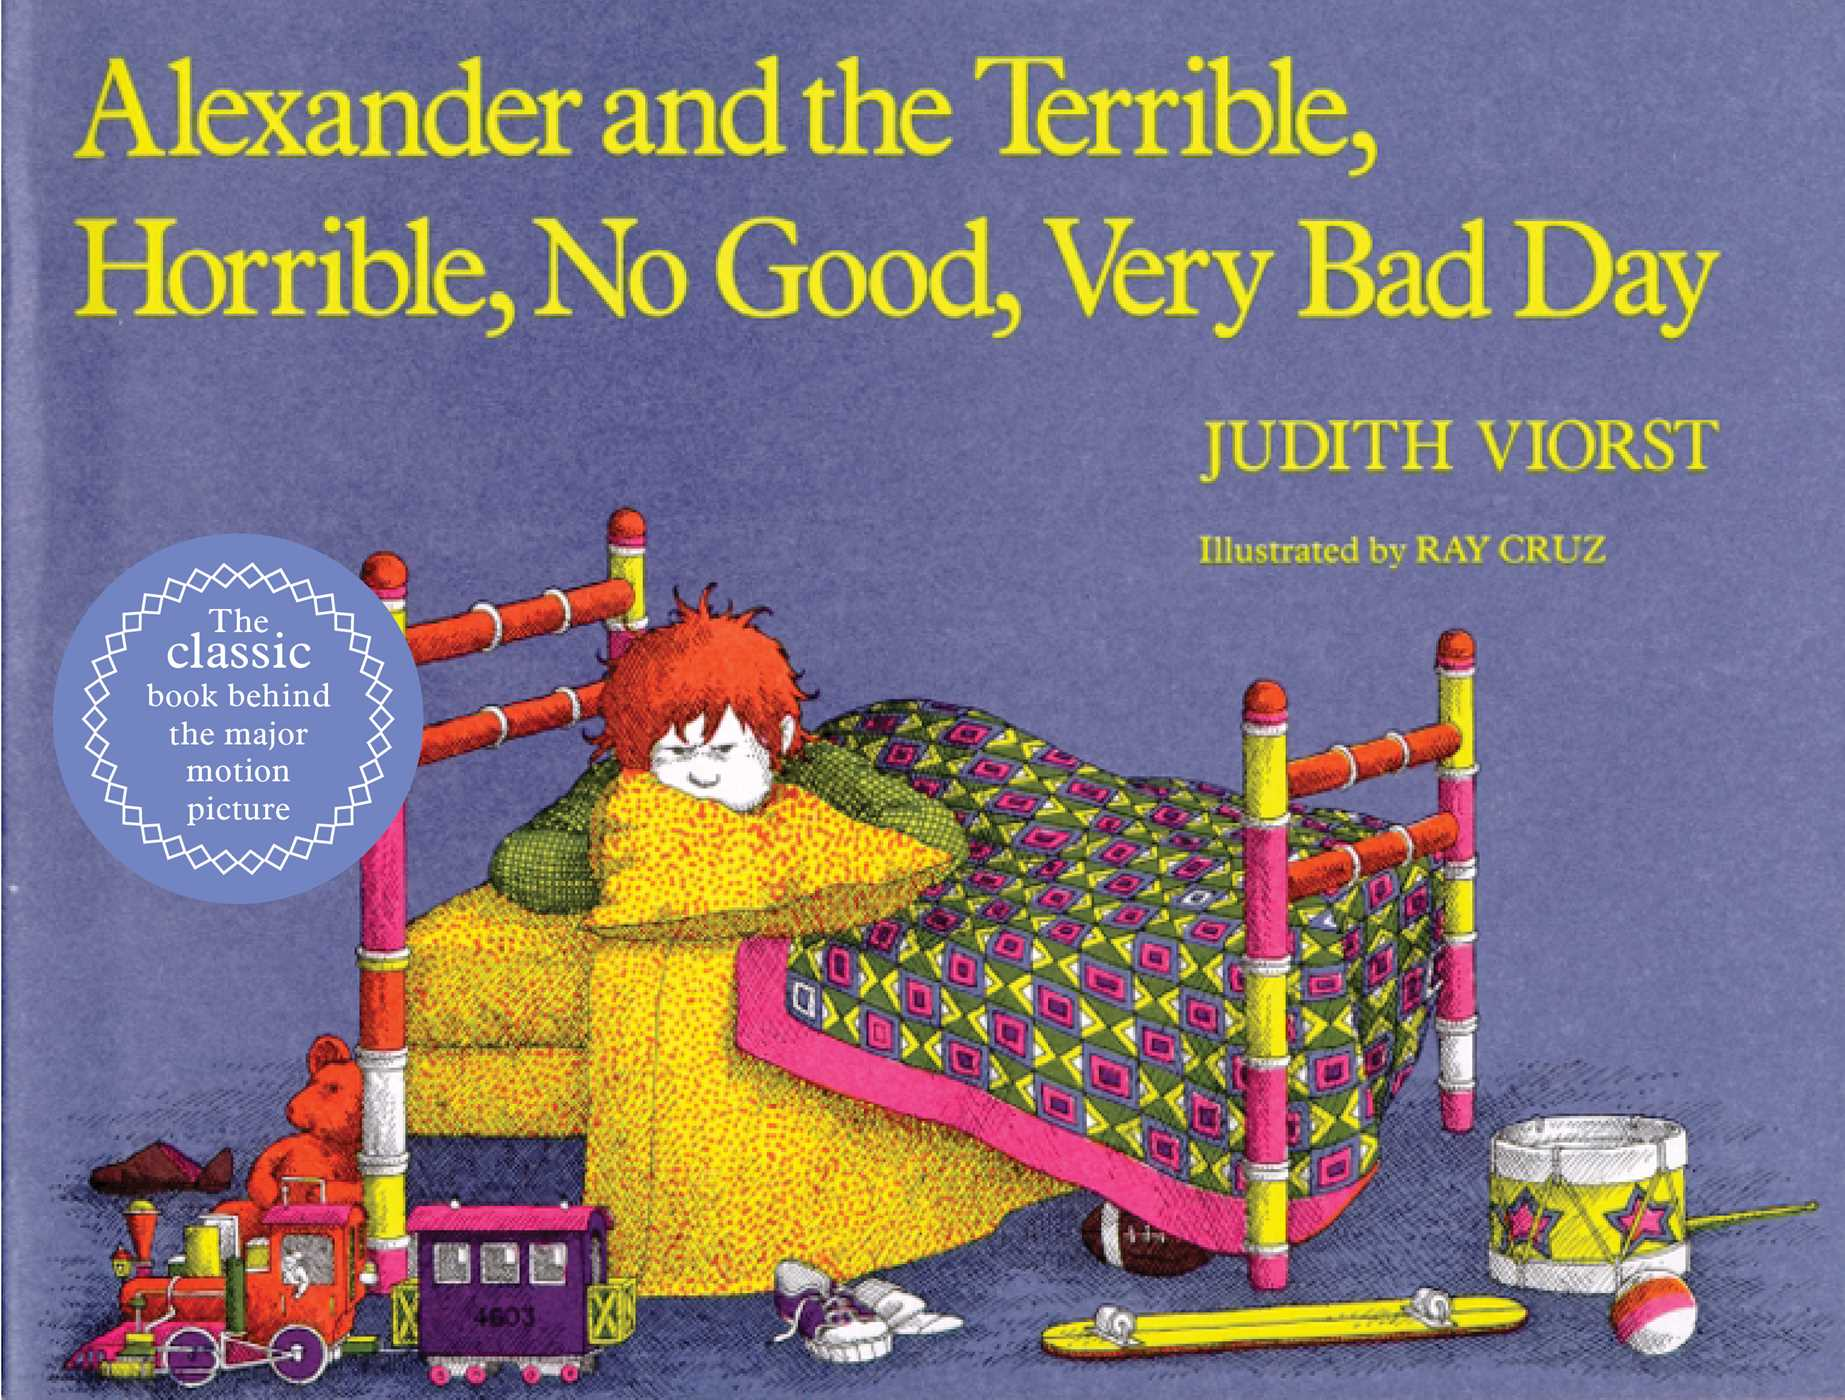 Alexander-and-the-terrible-horrible-no-good-9780689711732_hr